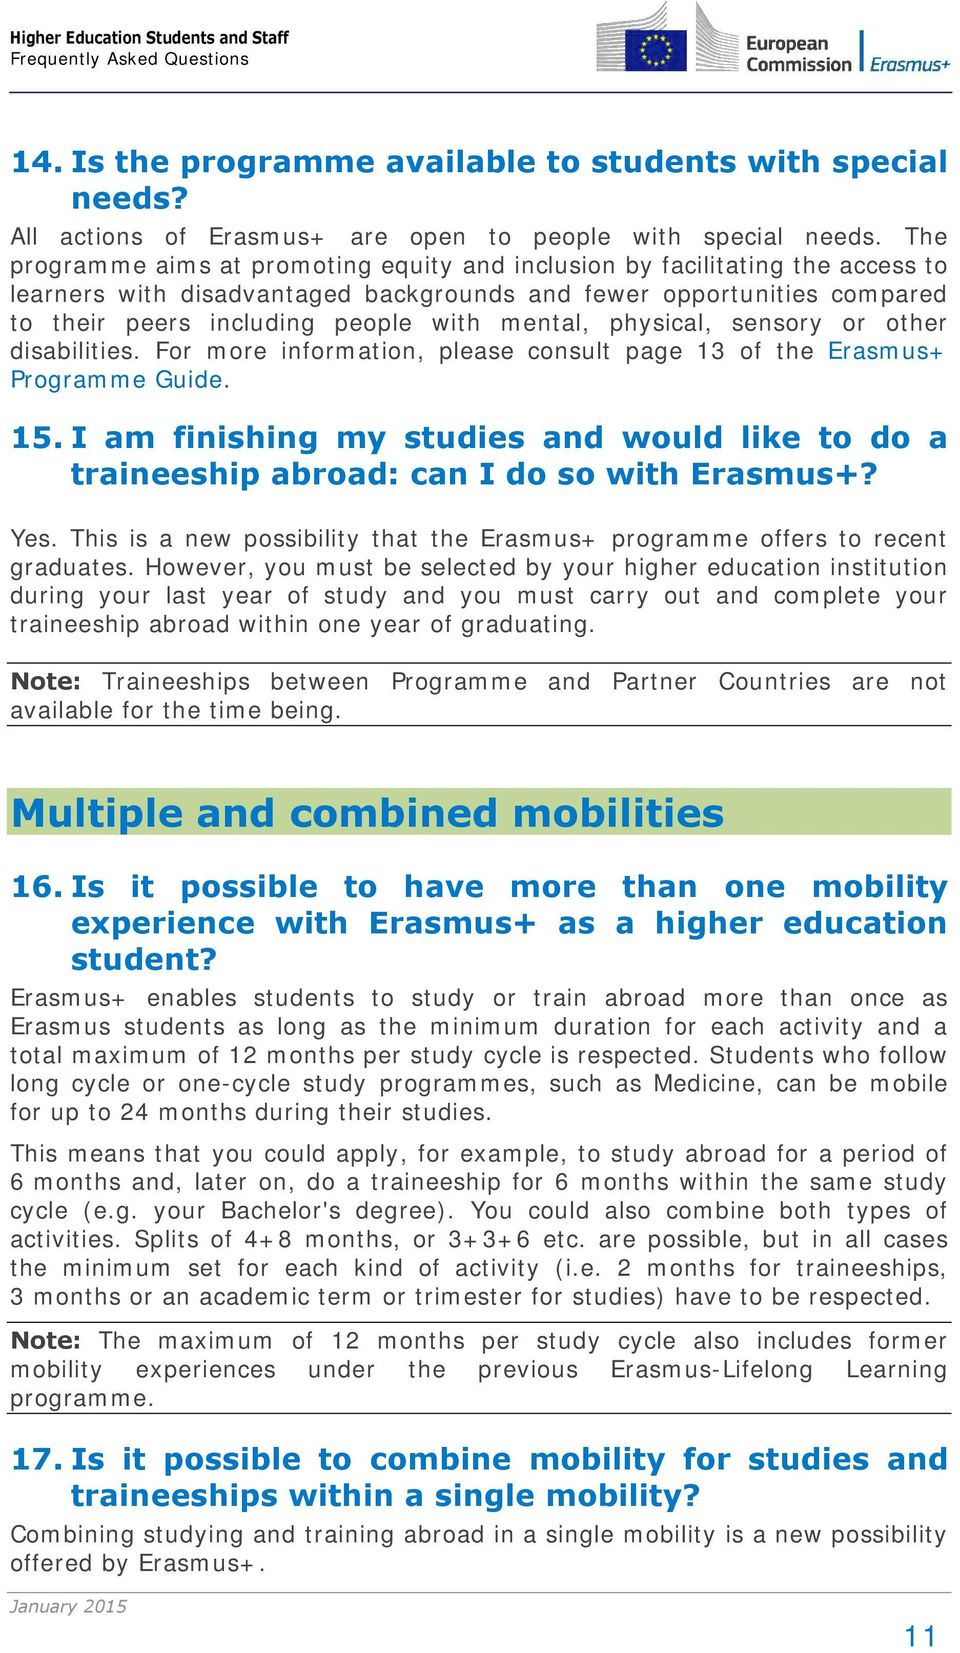 mental, physical, sensory or other disabilities. For more information, please consult page 13 of the Erasmus+ Programme Guide. 15.